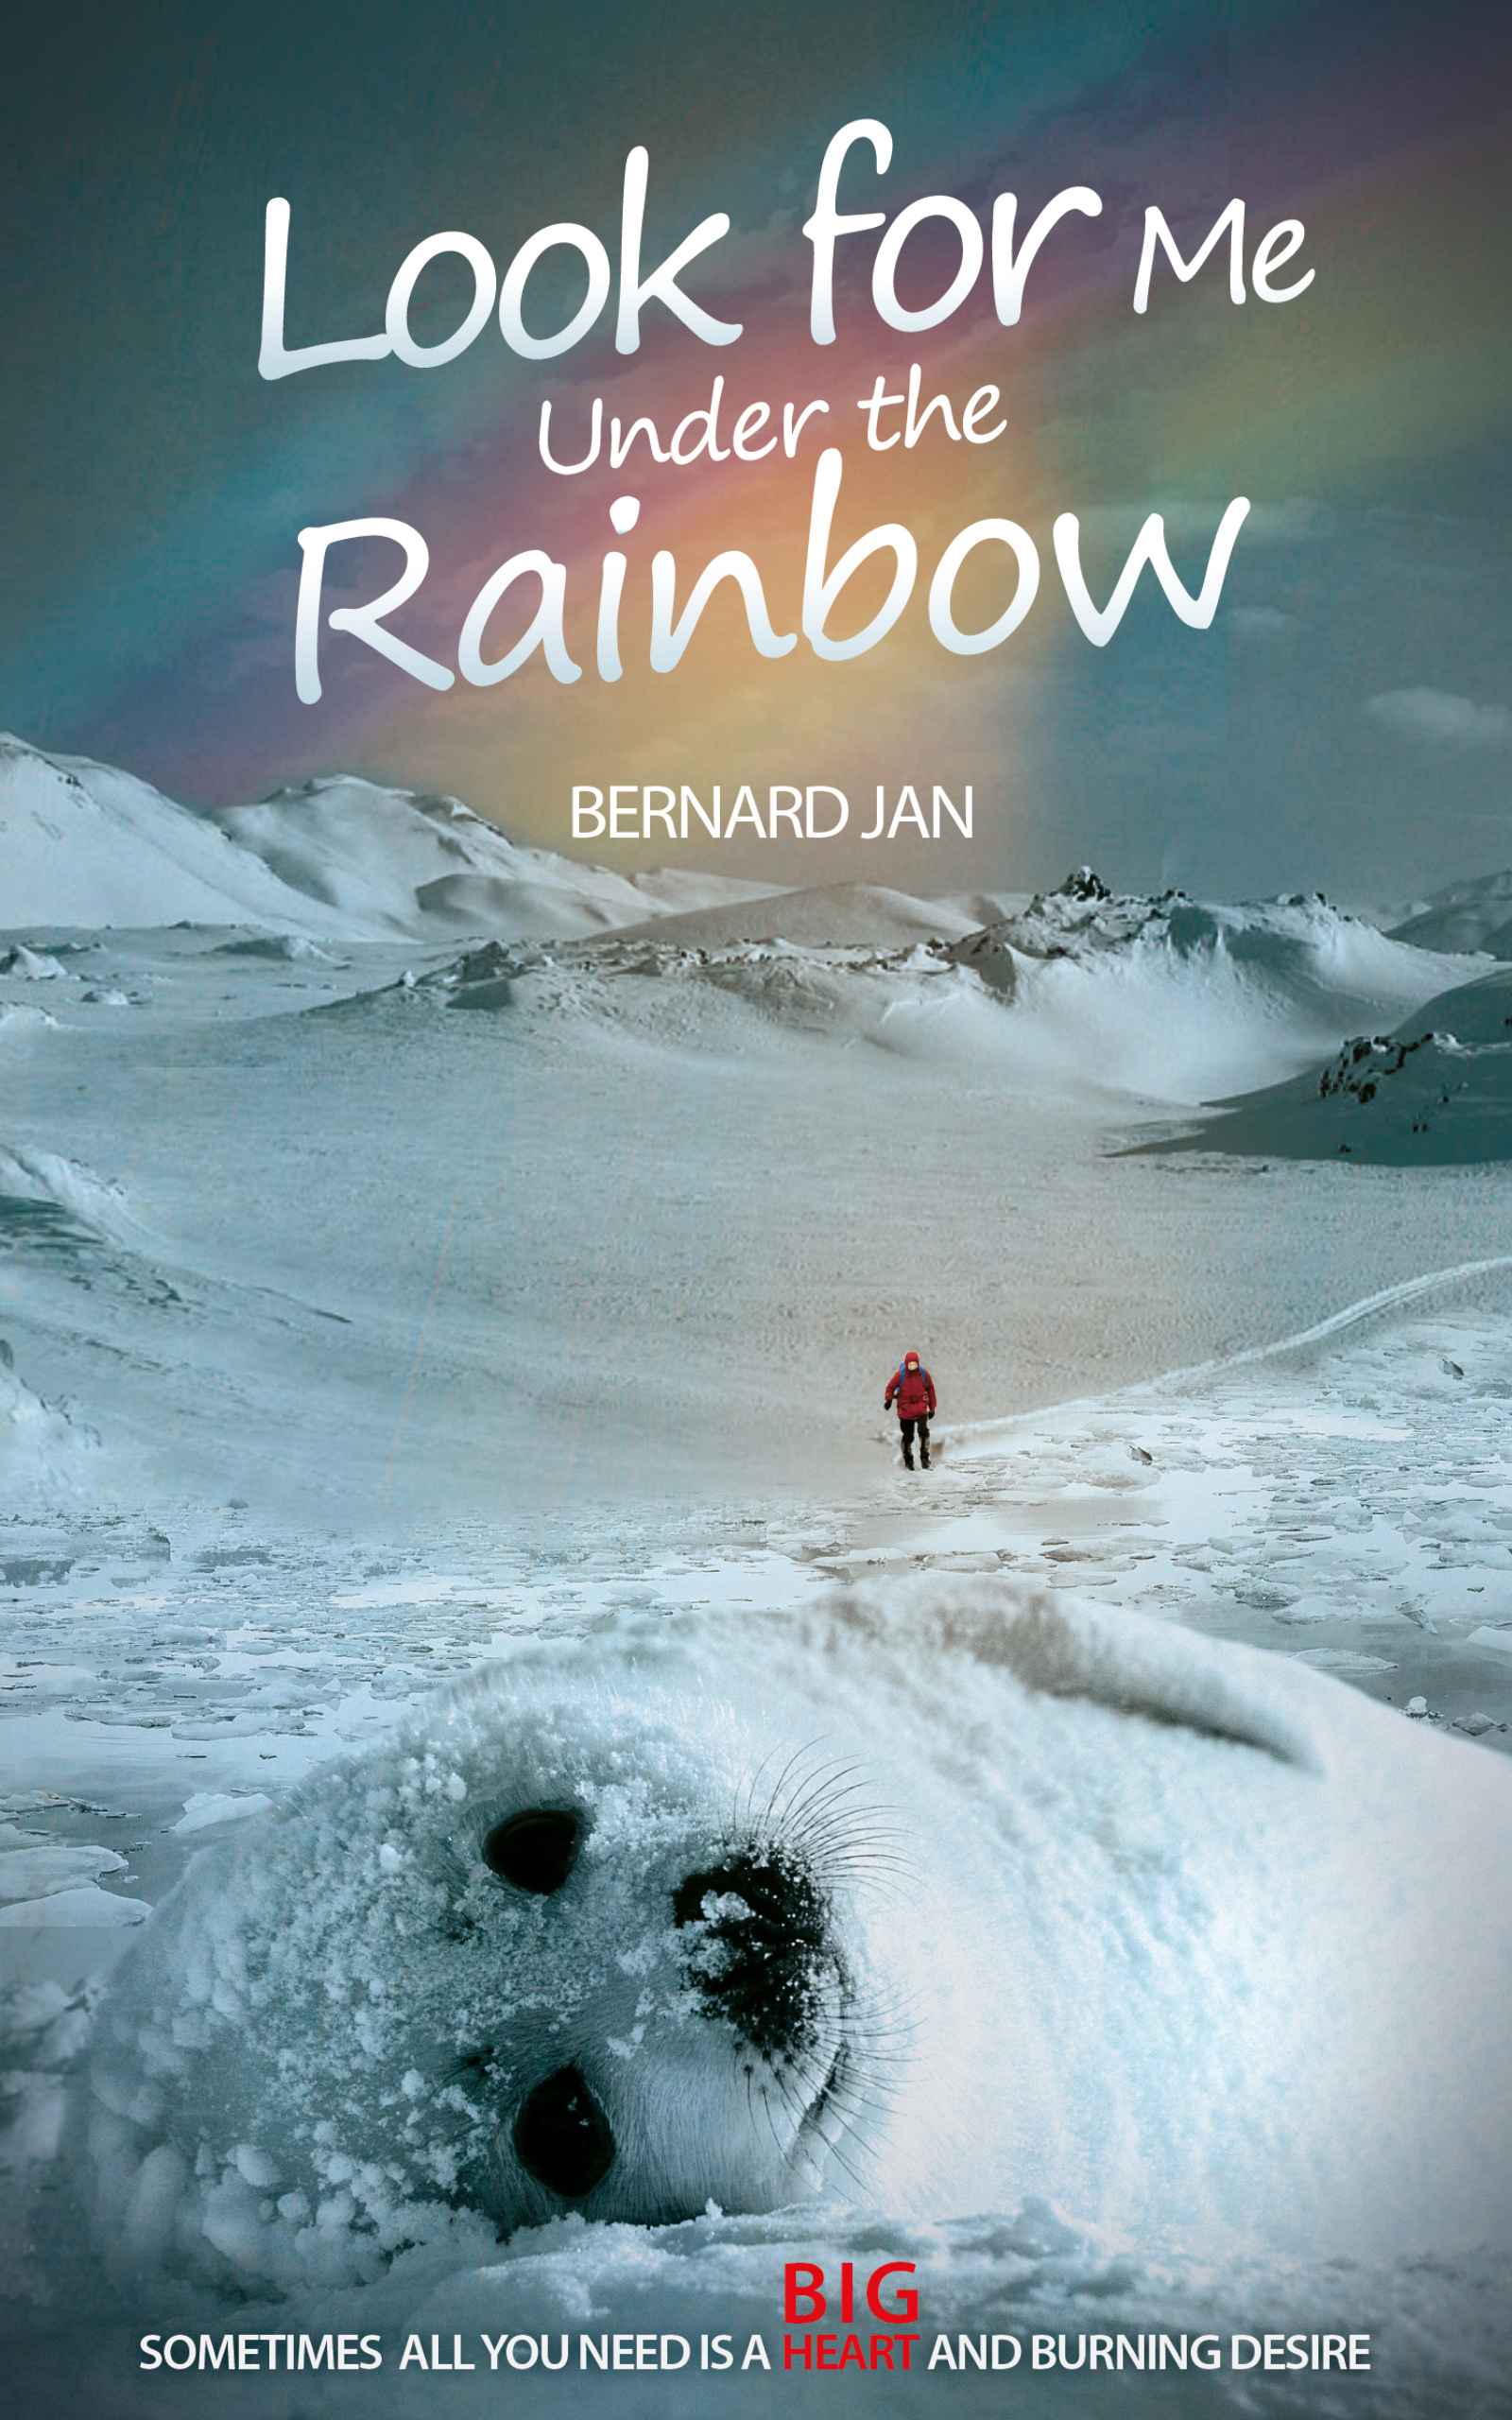 LOOK FOR ME UNDER THE RAINBOW - eBOOK AMAZON COVER 2560x1600 pixels